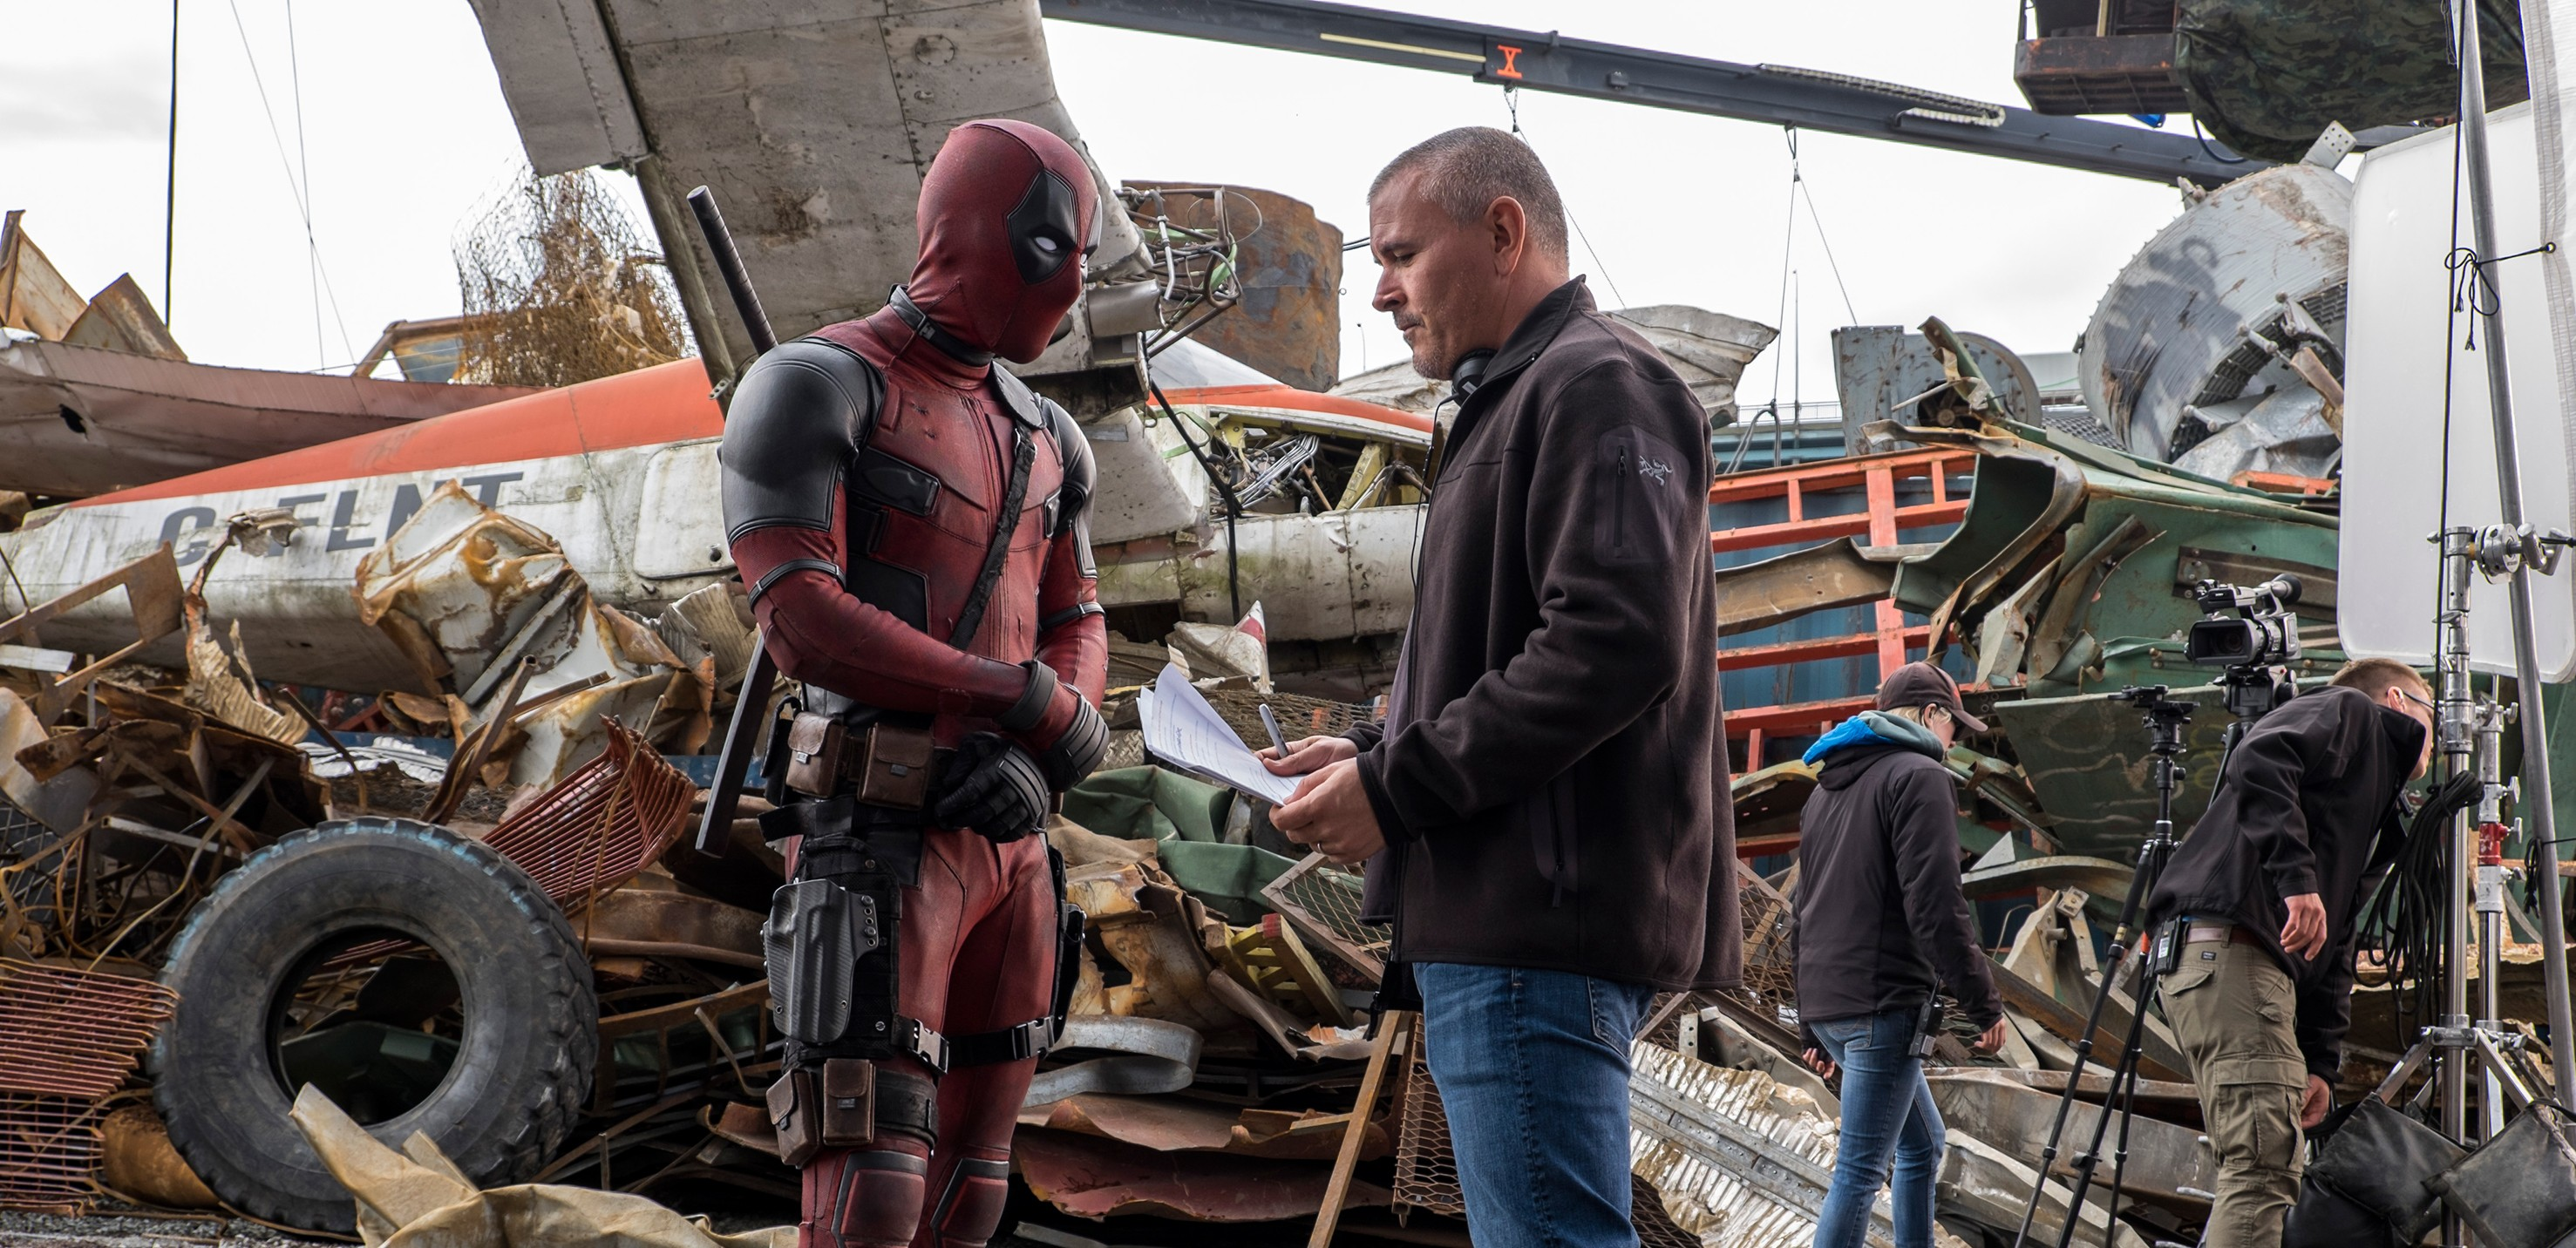 ryan-reynolds-tim-miller-deadpool-movie-image-e1446583644603